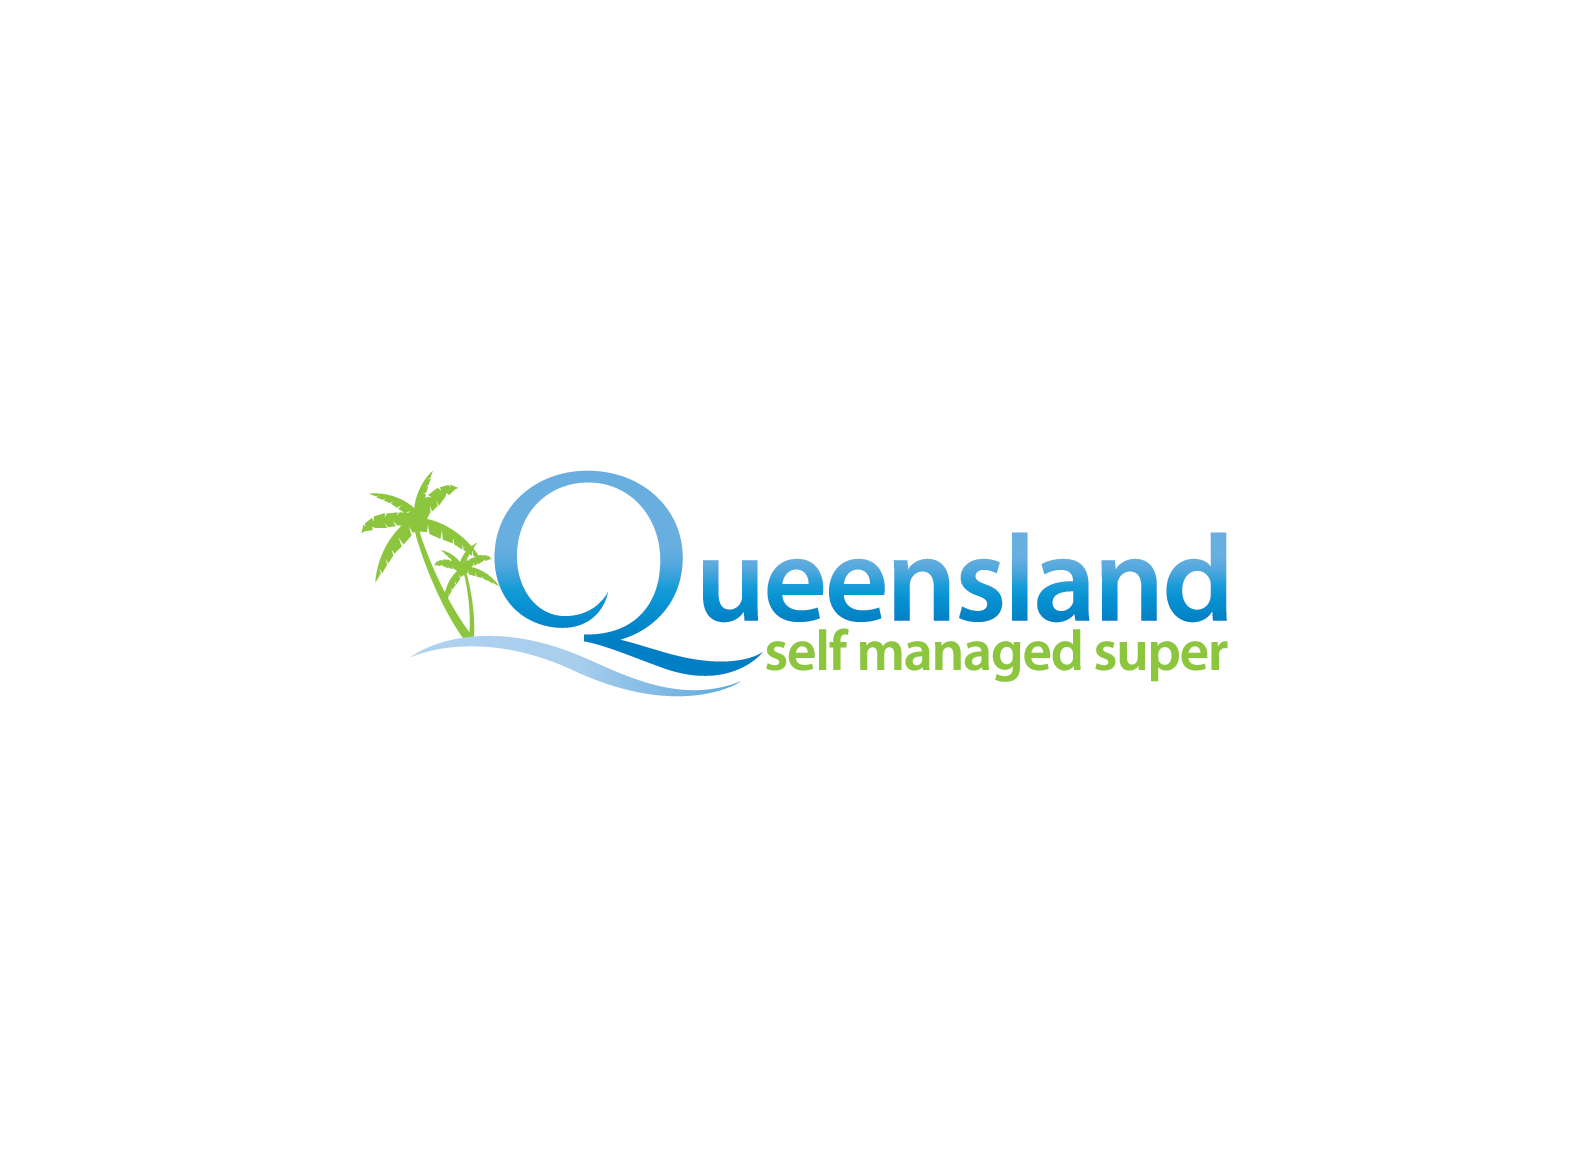 Design for Queensland accounting business